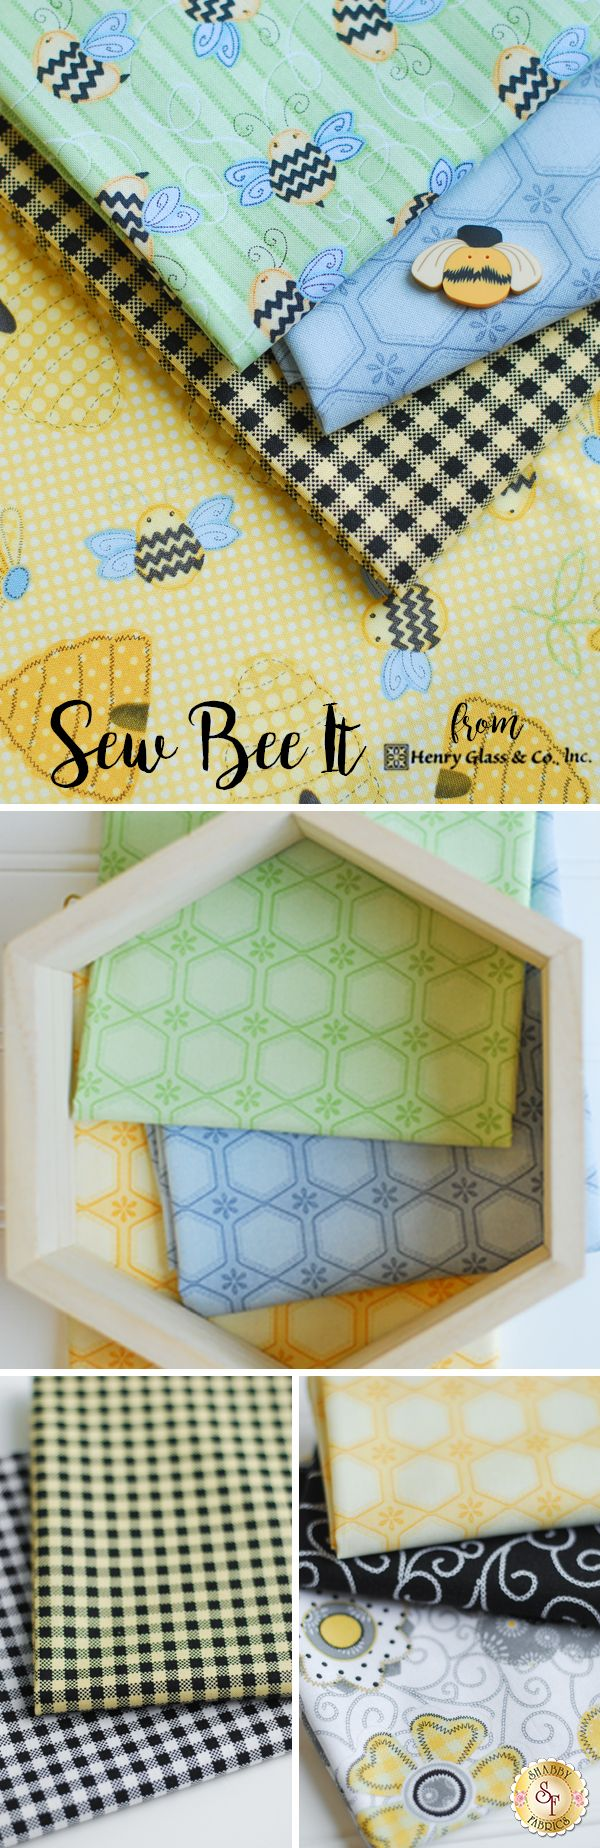 Sew Bee It - Henry Glass Fabrics The Sew Bee It fabric collection from Henry Glass Fabrics is fun and playful with whimsical images of bees and honeycombs. Designed by Shelly Comiskey, Sew Bee It features images of sunflowers, bees buzzing around honeycombs, and adorable plaids. This line features blacks, yellows, whites, and greens creating a stunning combination.